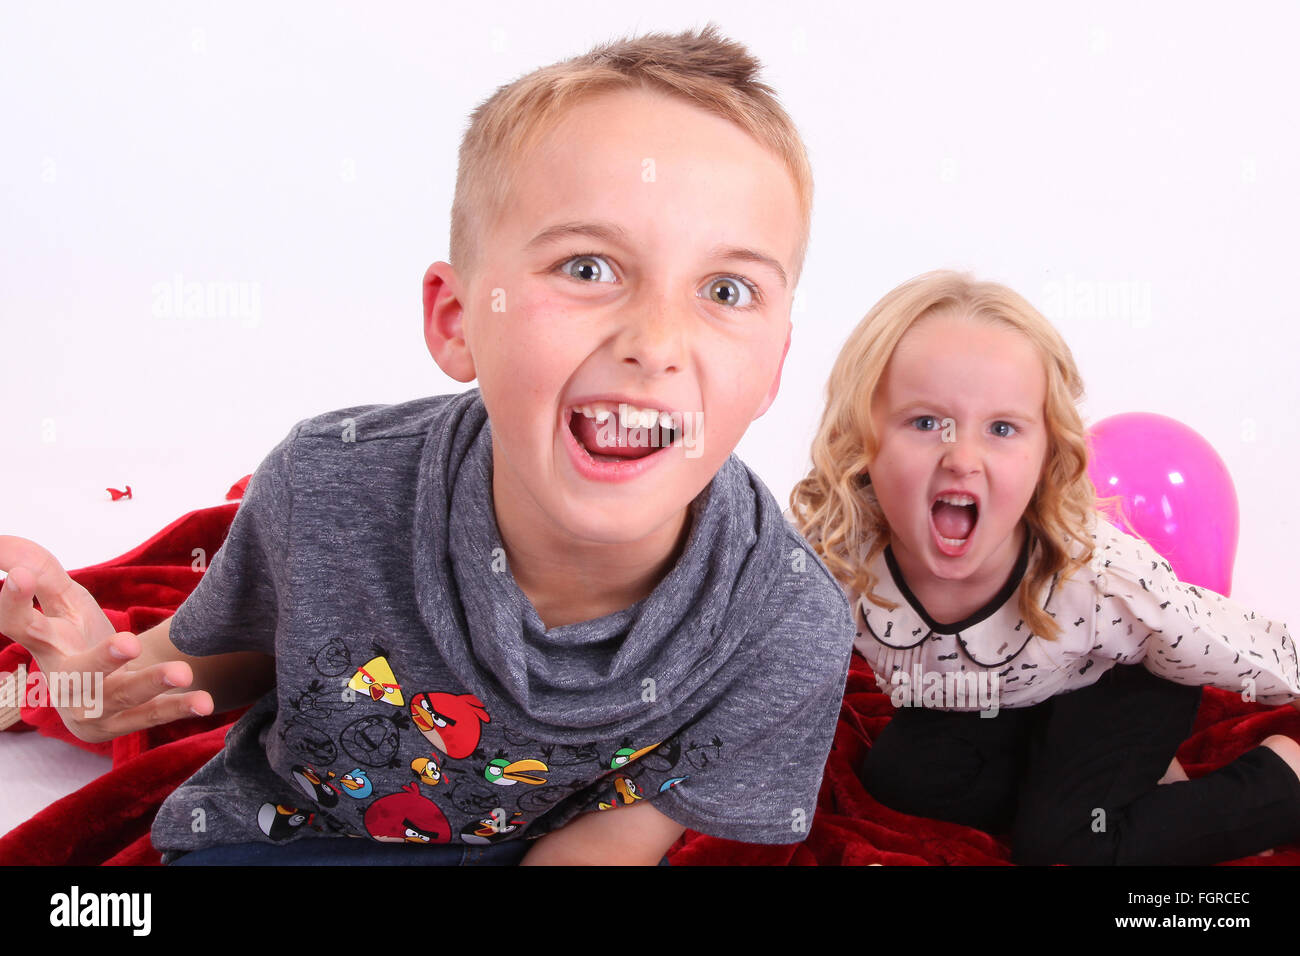 angry kids, shouting, aggressive behaviour, attention deficit hyperactivity disorder - Stock Image